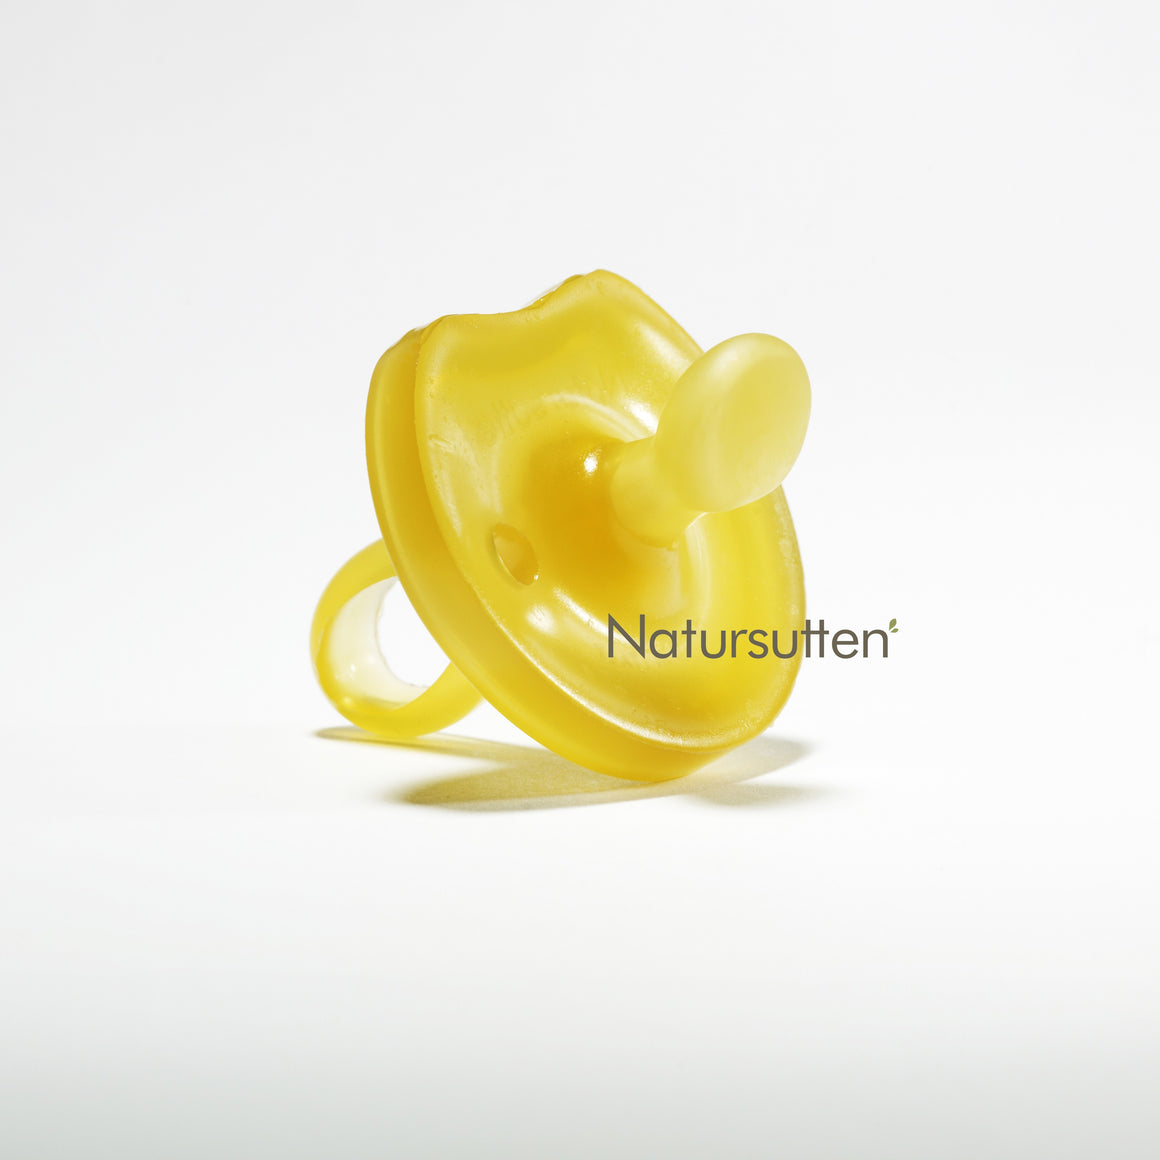 baby using a natursutten pacifier, close up of a pacifier and the Natursutten logo